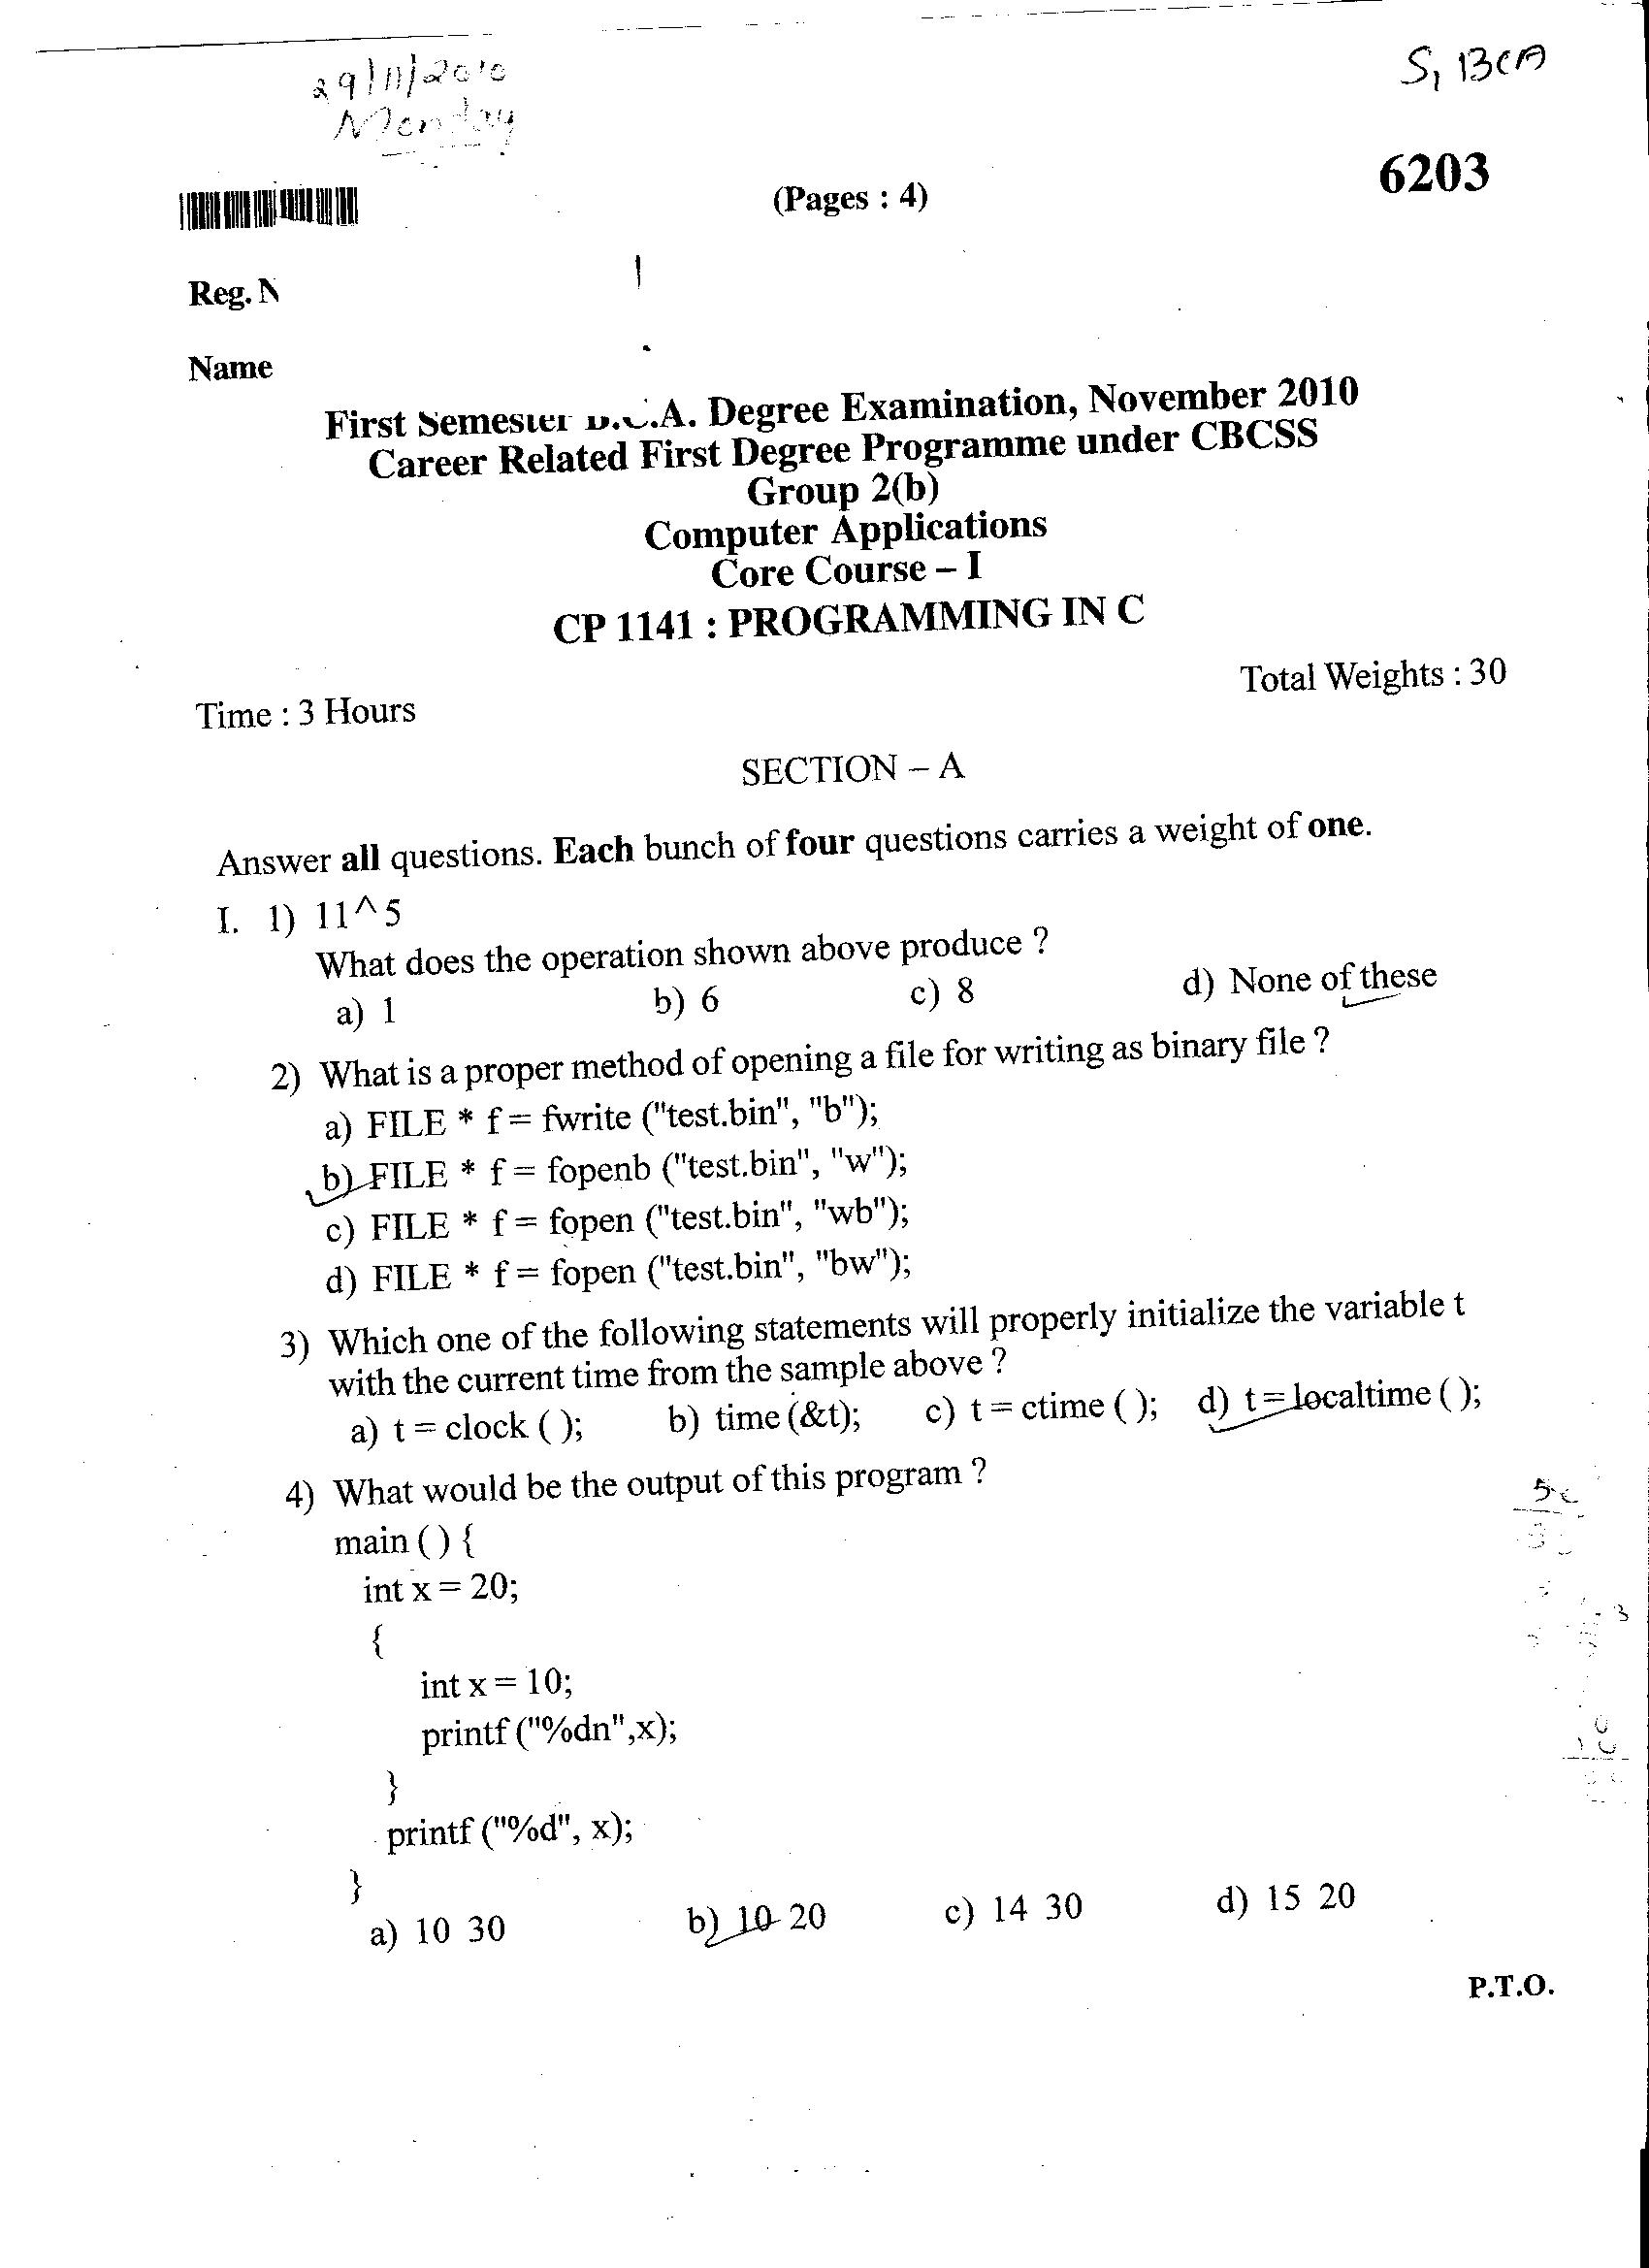 University Of Kerala First Semester Bca Degree Examination